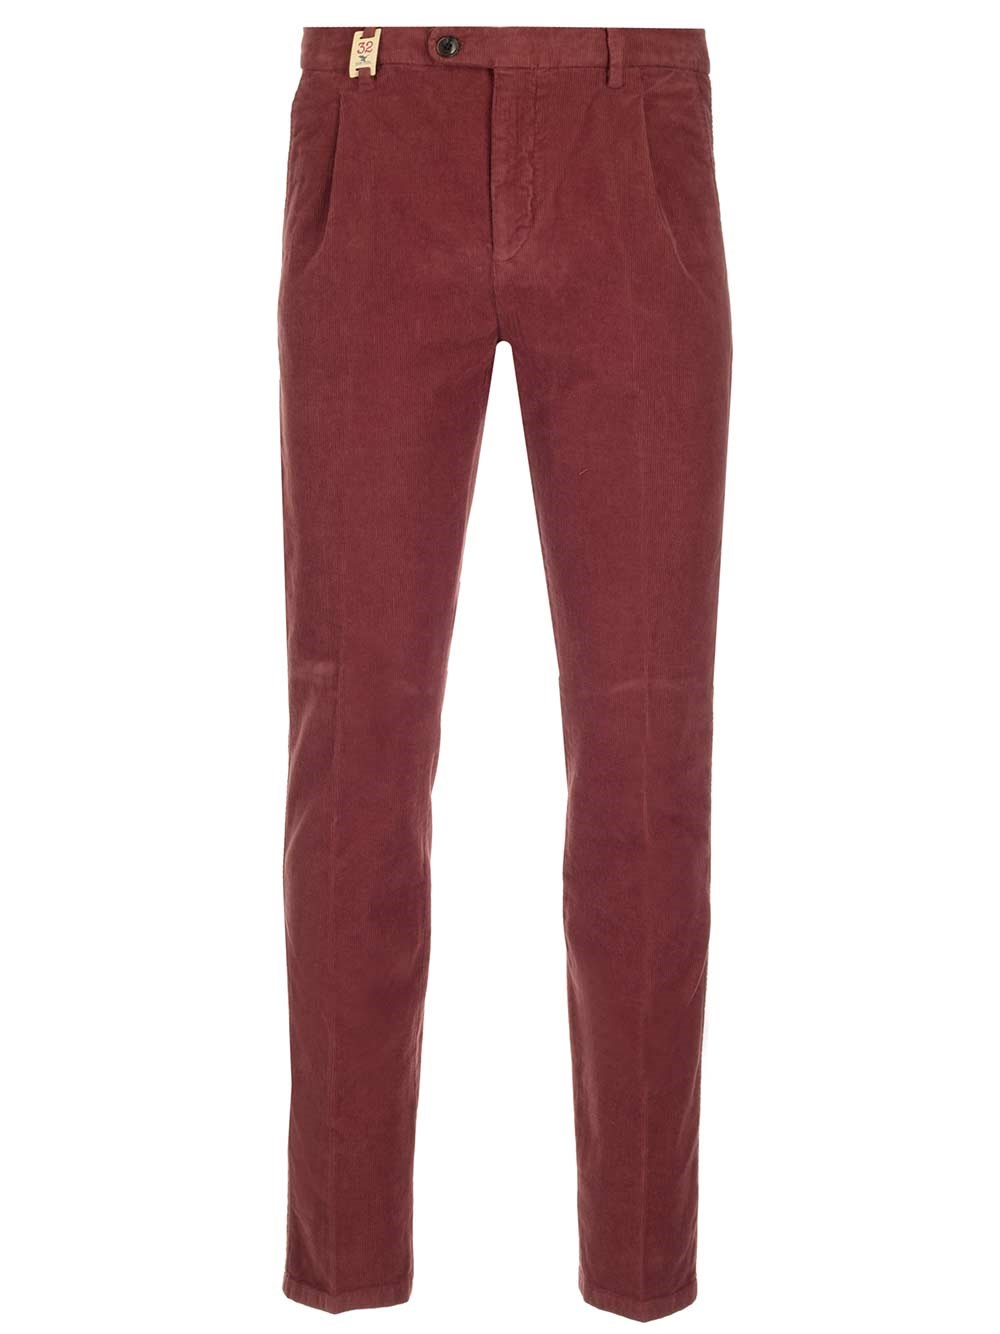 BARMAS Red Velvet Trousers